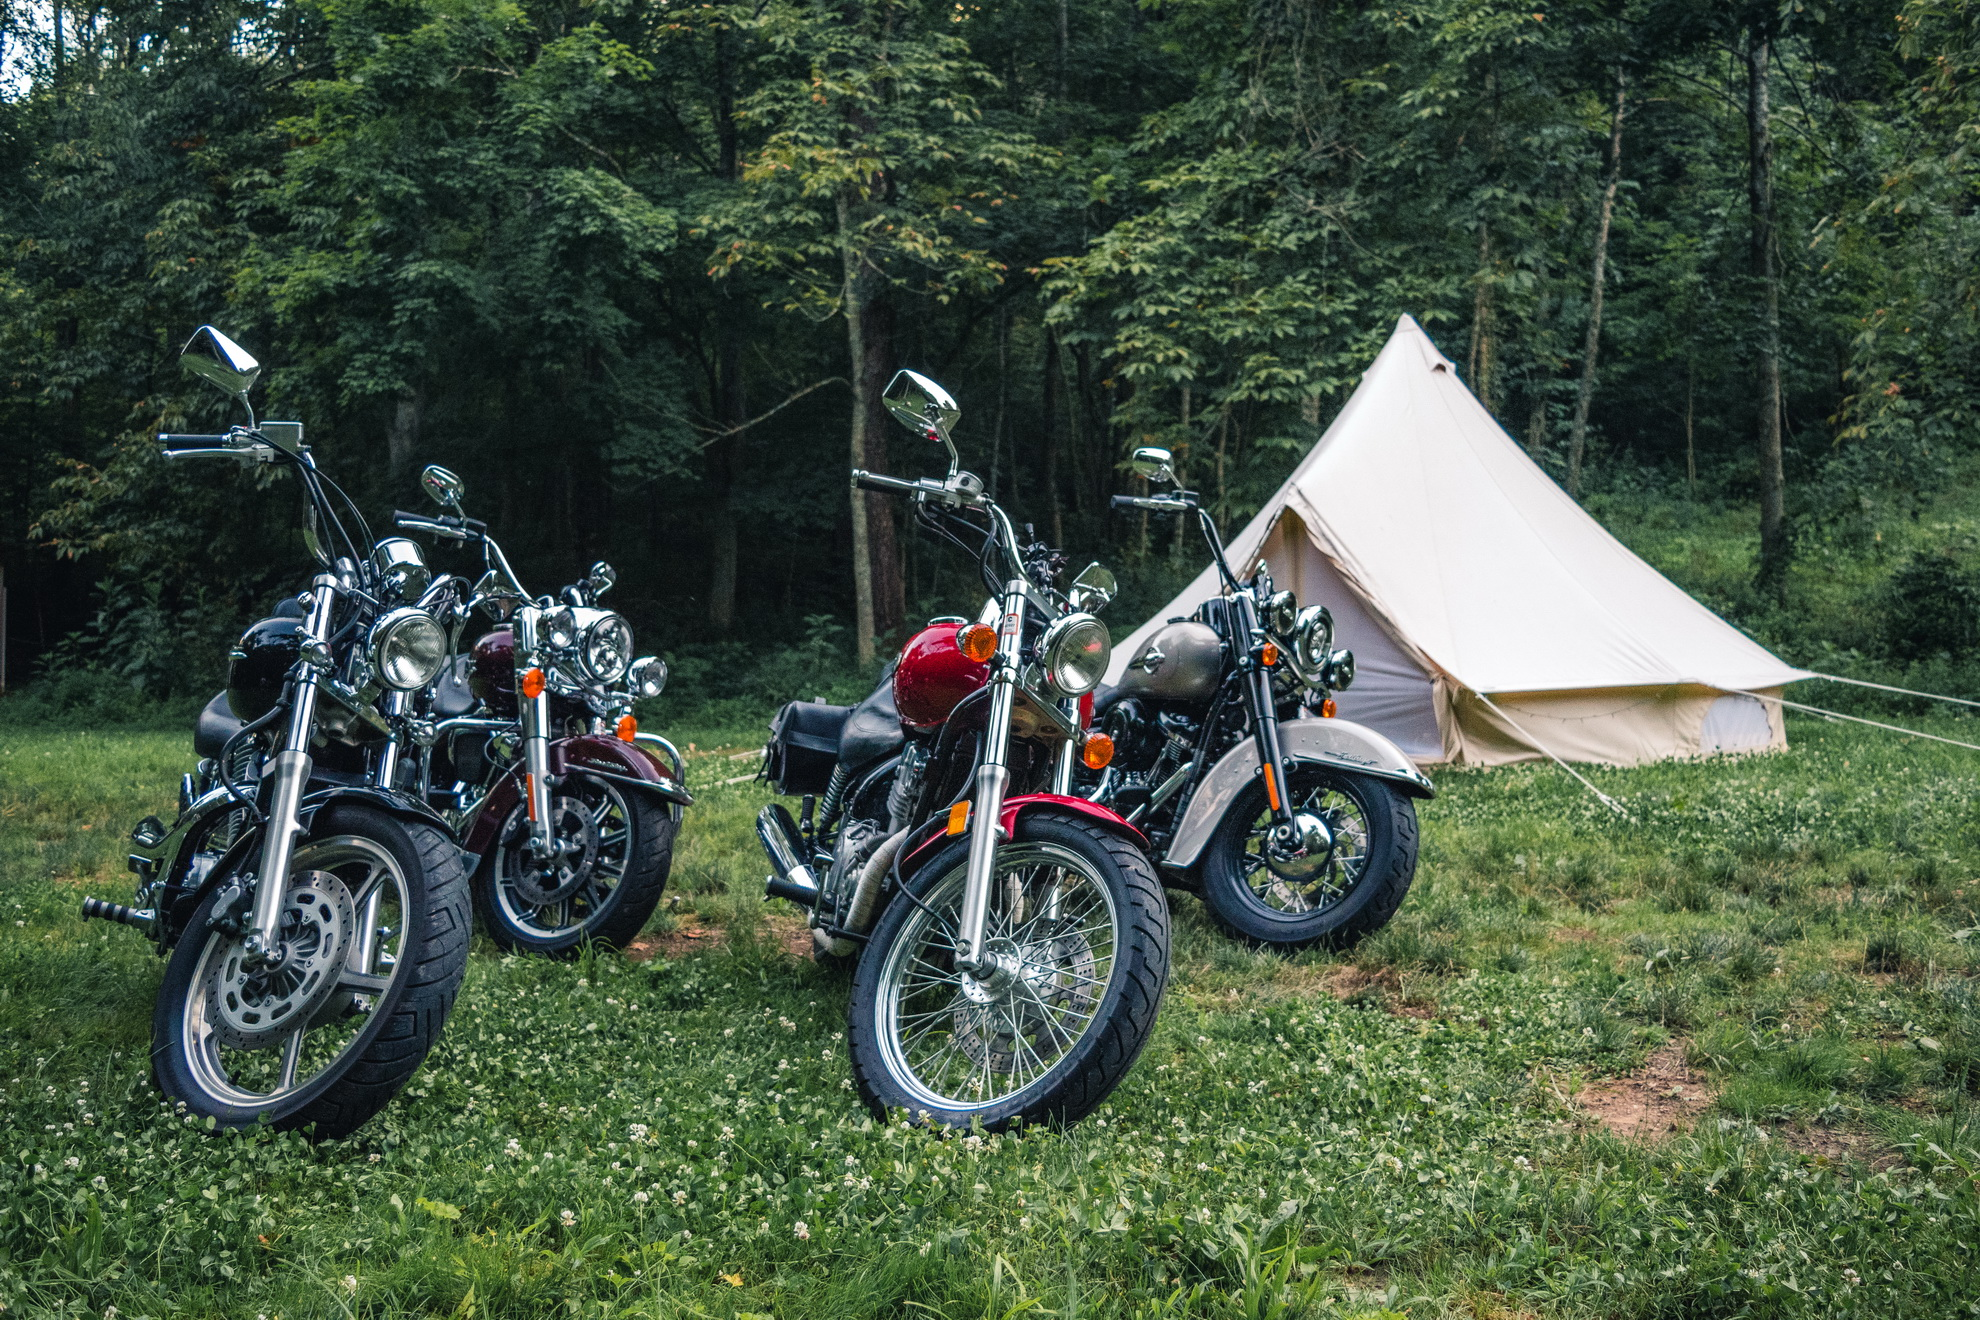 Some bikes camping at Blue Heron Run by Albany. Thanks to Sarah Sipos for the photo!